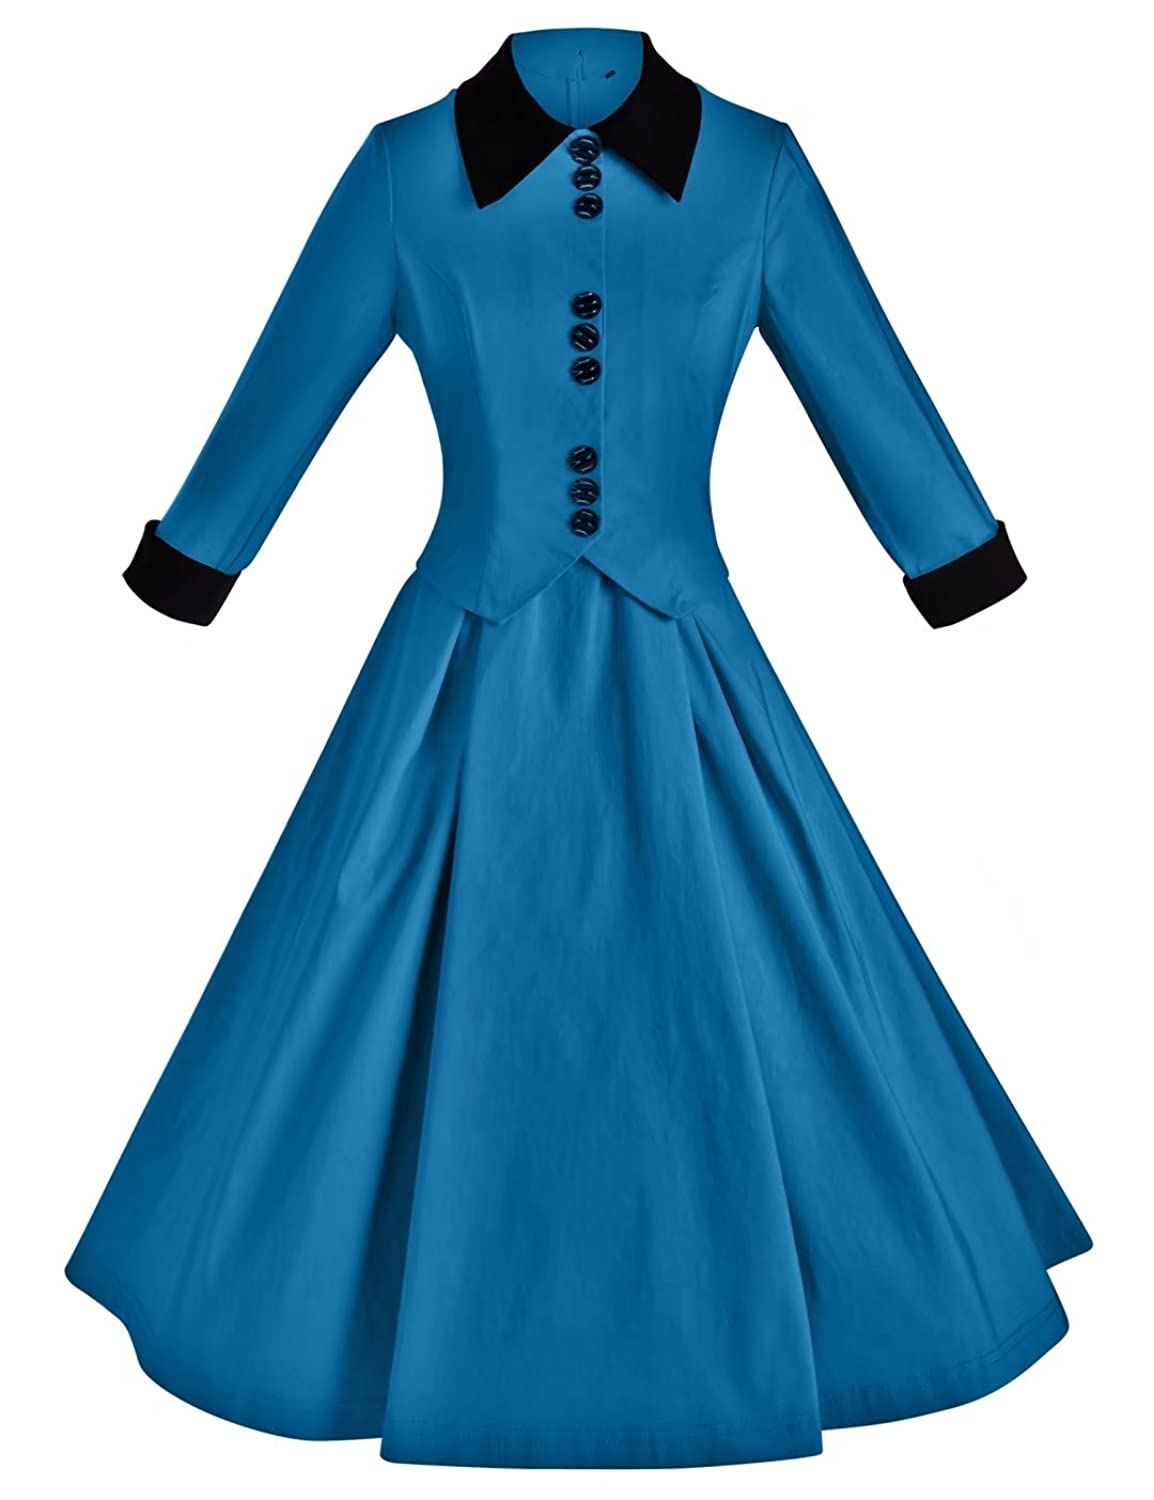 GownTown Women\'s Vintage 1950s Retro Rockabilly Prom Dresses at ...